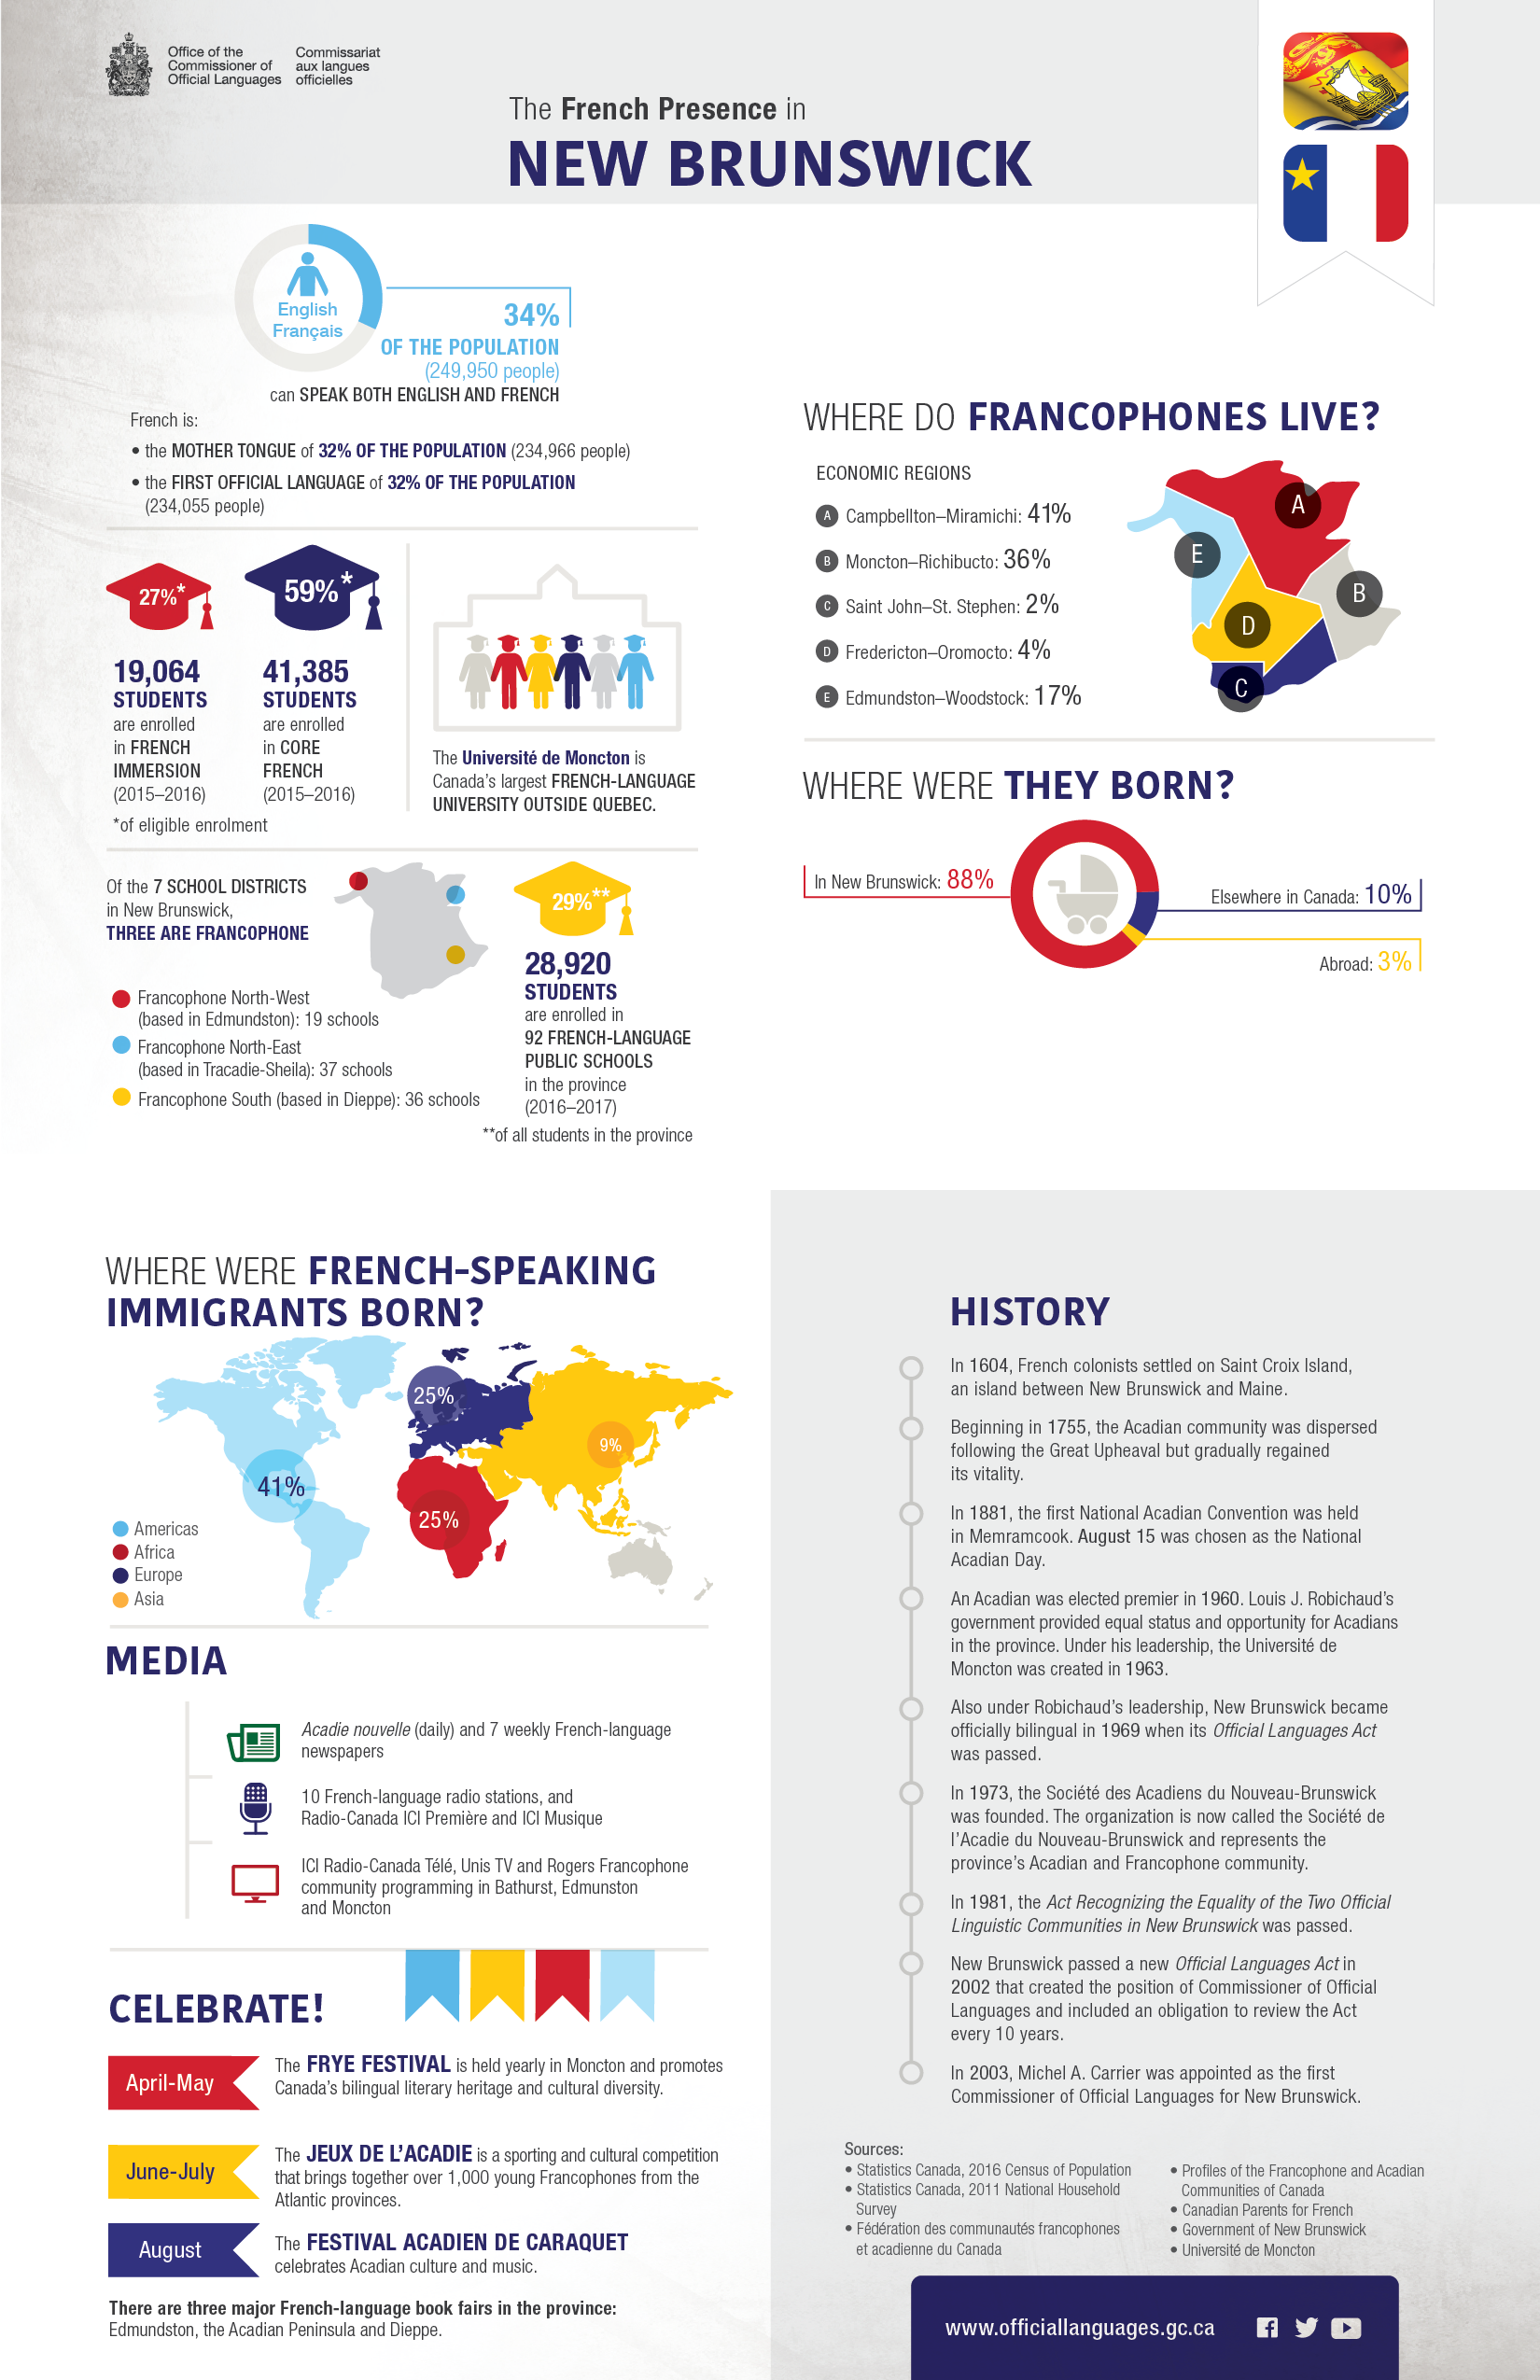 The French presence in New Brunswick. Details in text following the infographic.